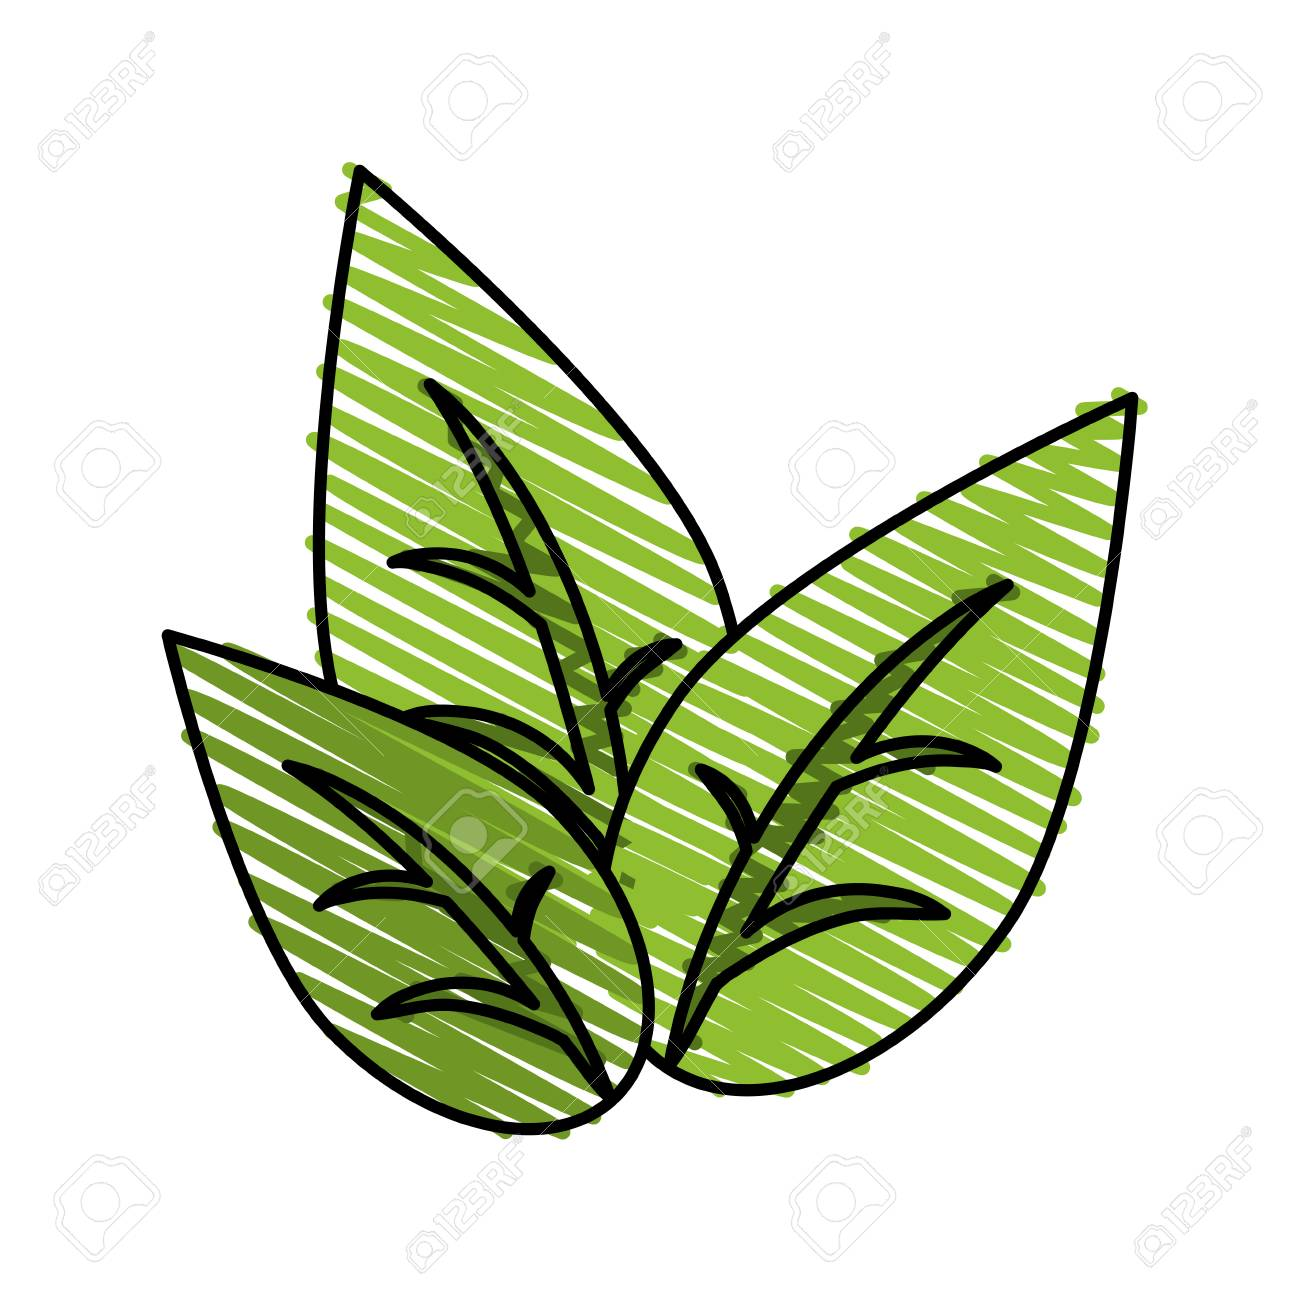 Green Leaves Doodle Over White Background Vector Illustration Royalty Free Cliparts Vectors And Stock Illustration Image 82191821